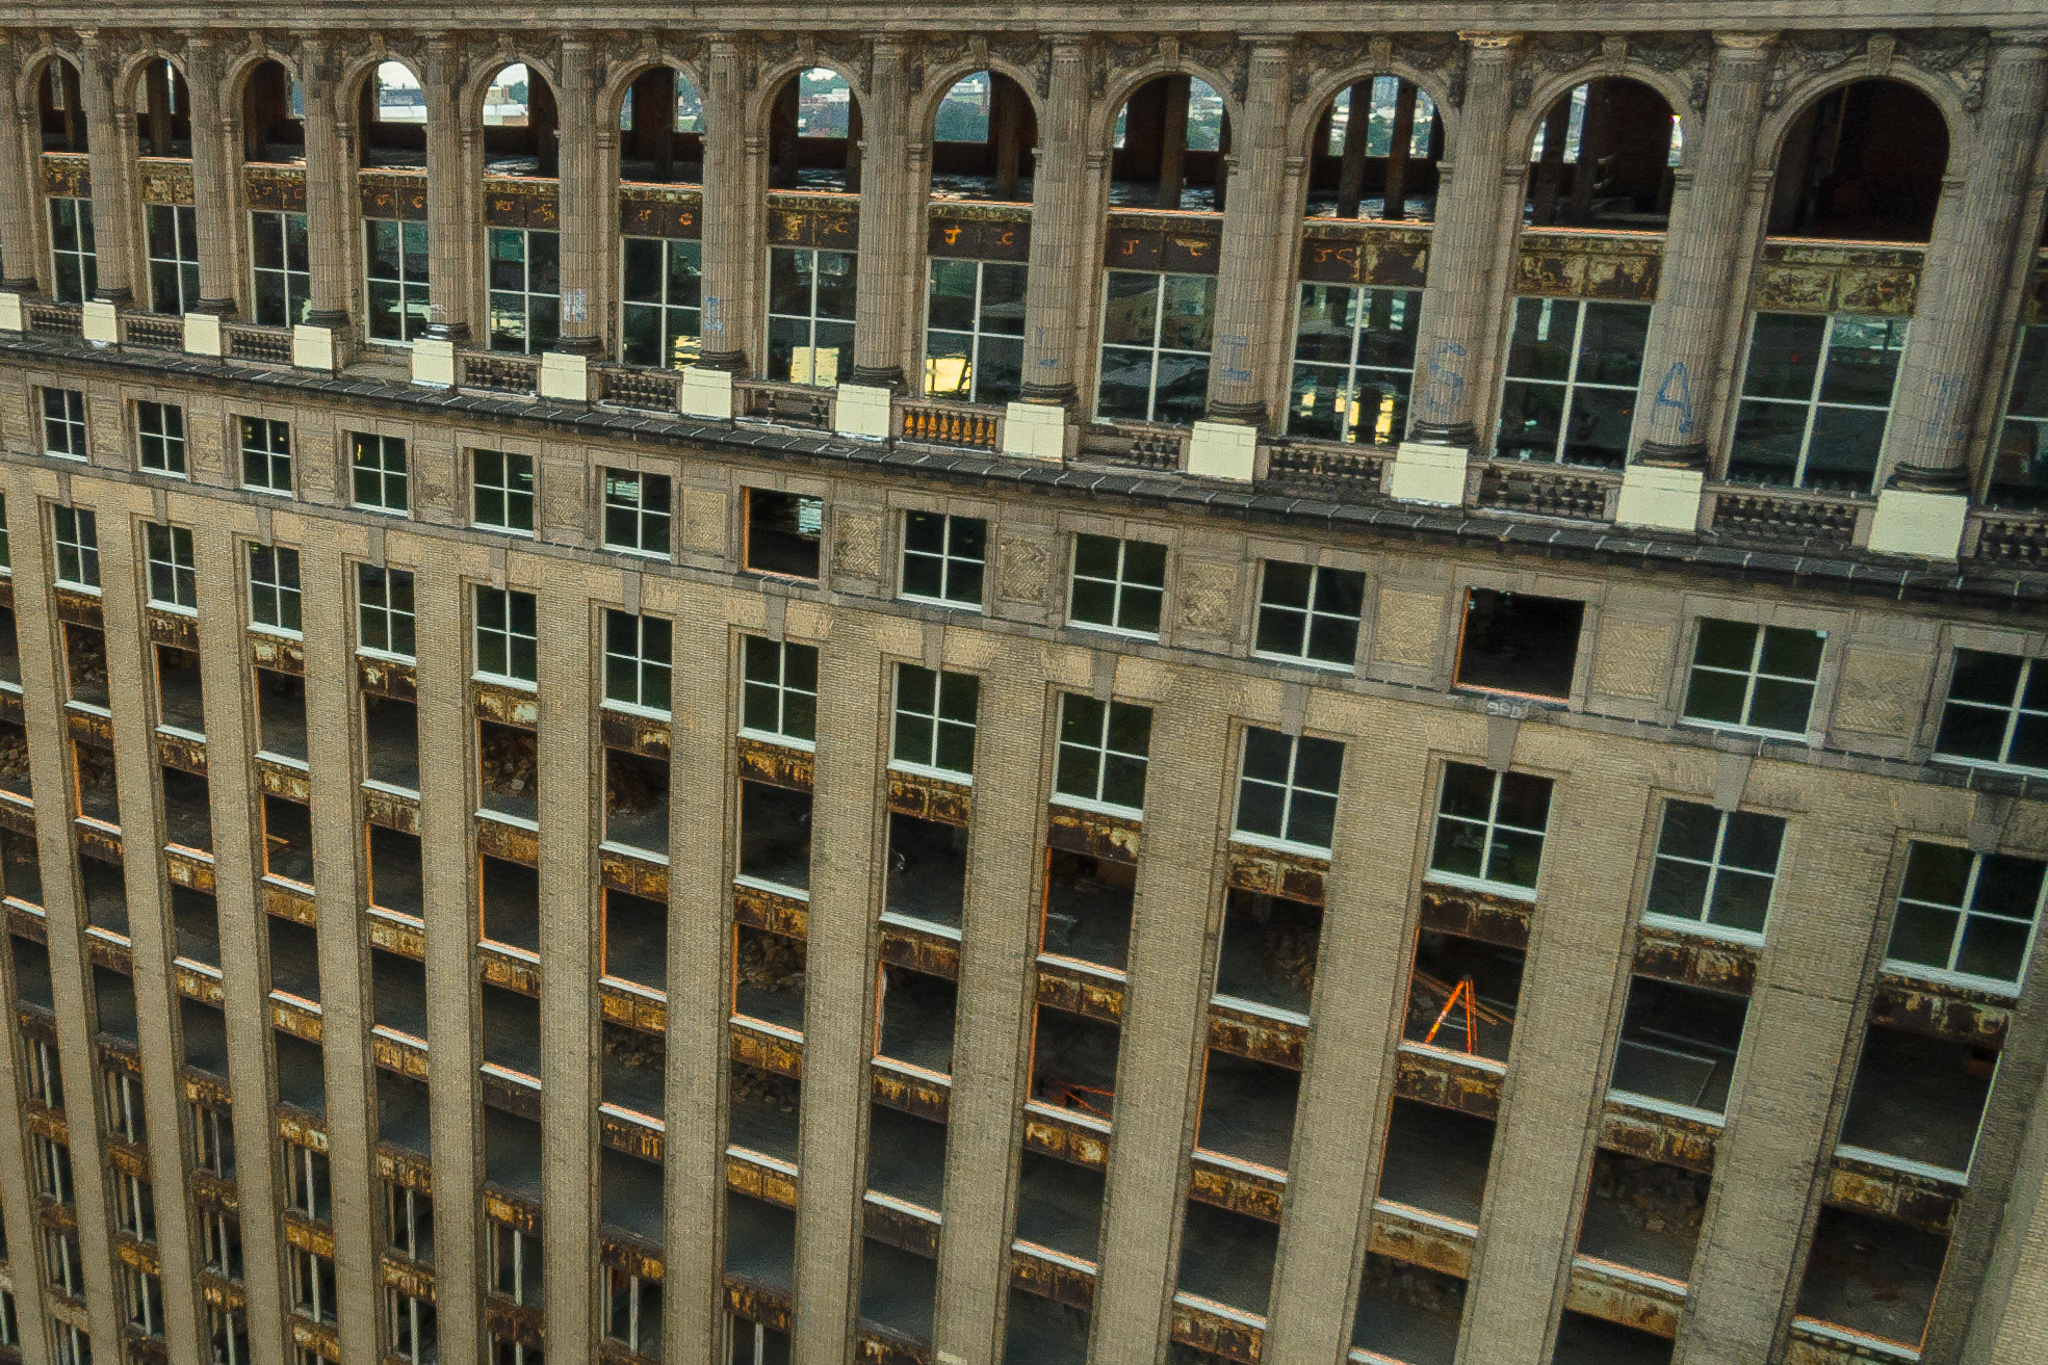 After being secured for years, images showing the internals of the building had become more rare.  This aerial images provides a voyeuristic view that would soon be sealed again.